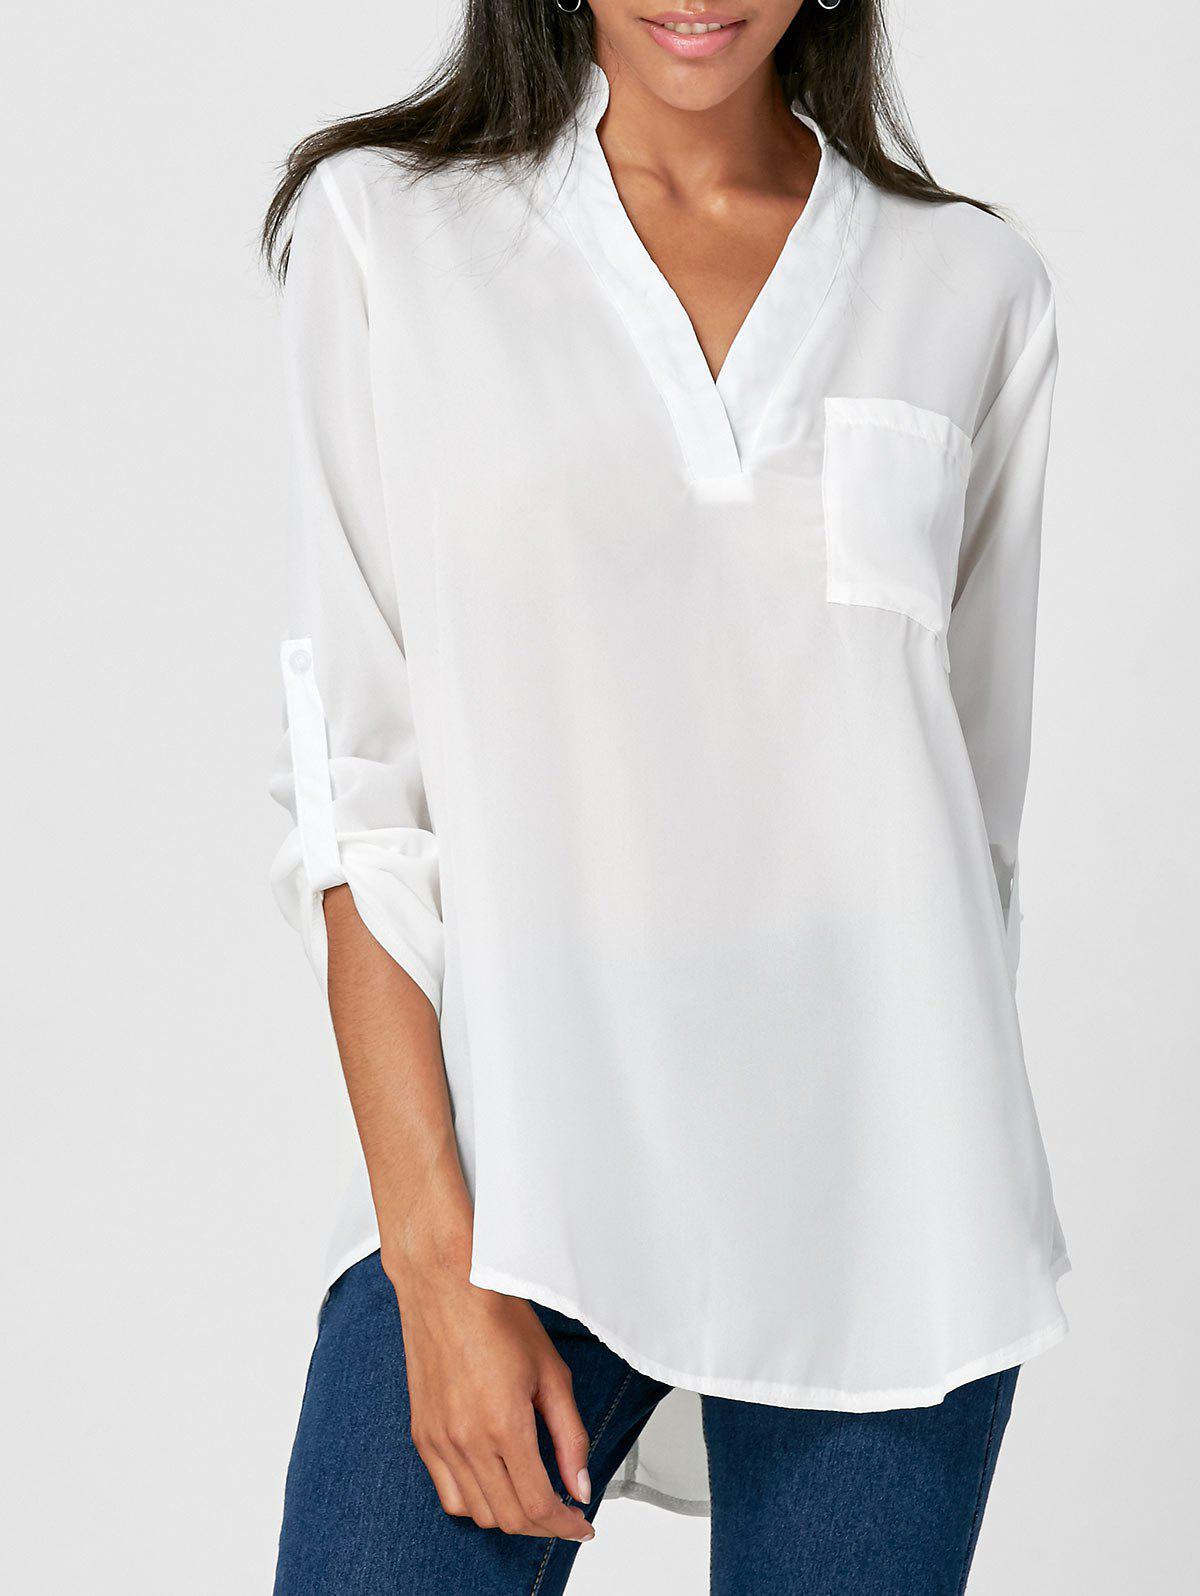 79 Off 2019 Simple V Neck Solid Color 3 4 Sleeve Blouse For Women